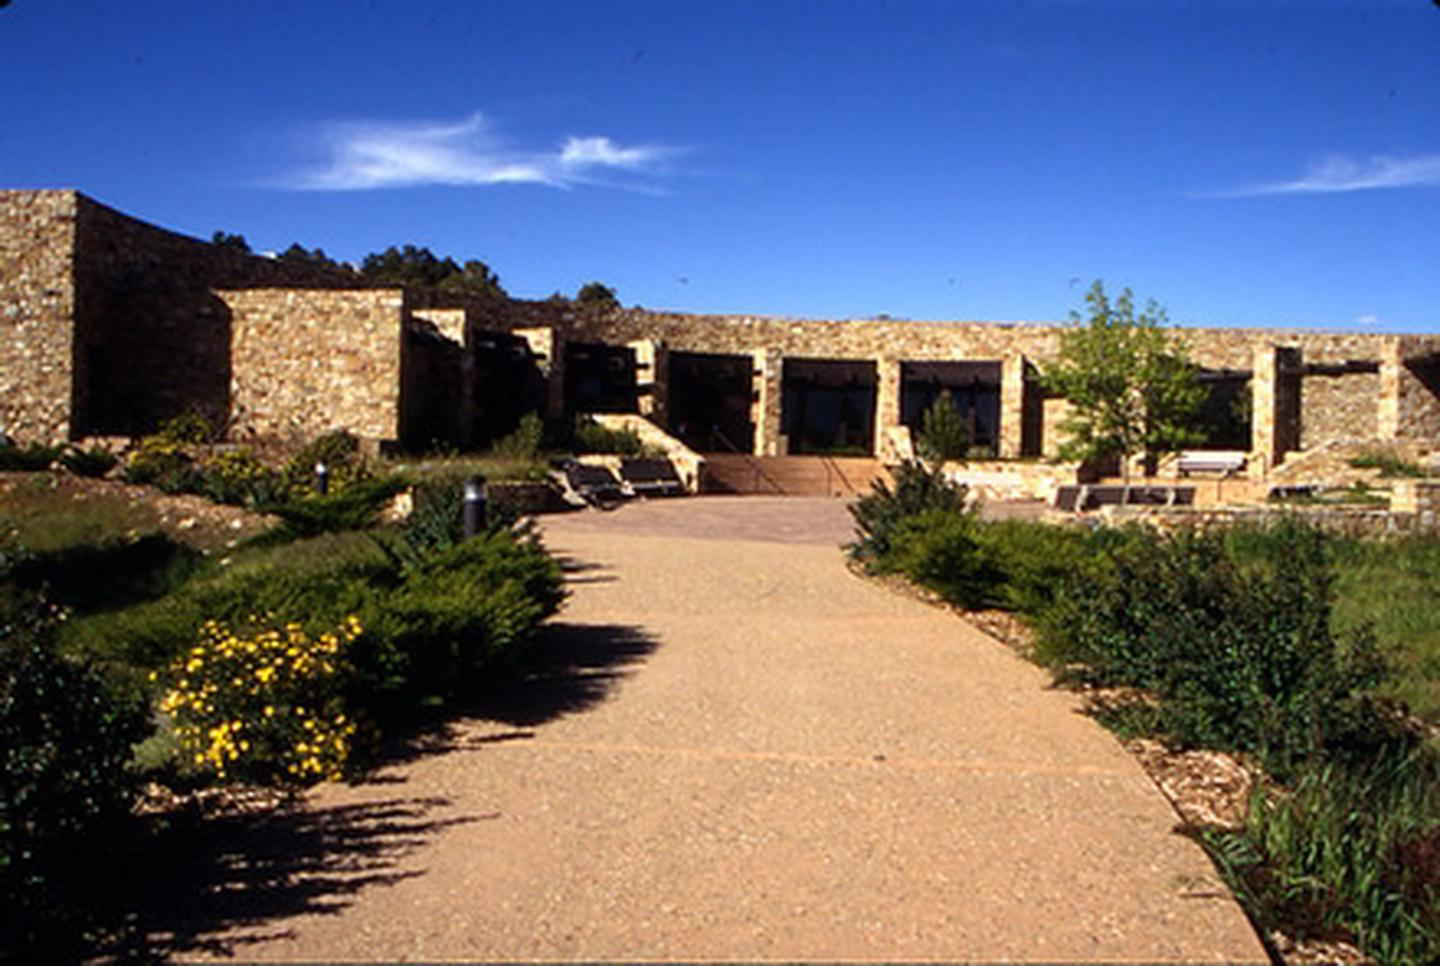 Canyons of the Ancients Visitor Center and Museum